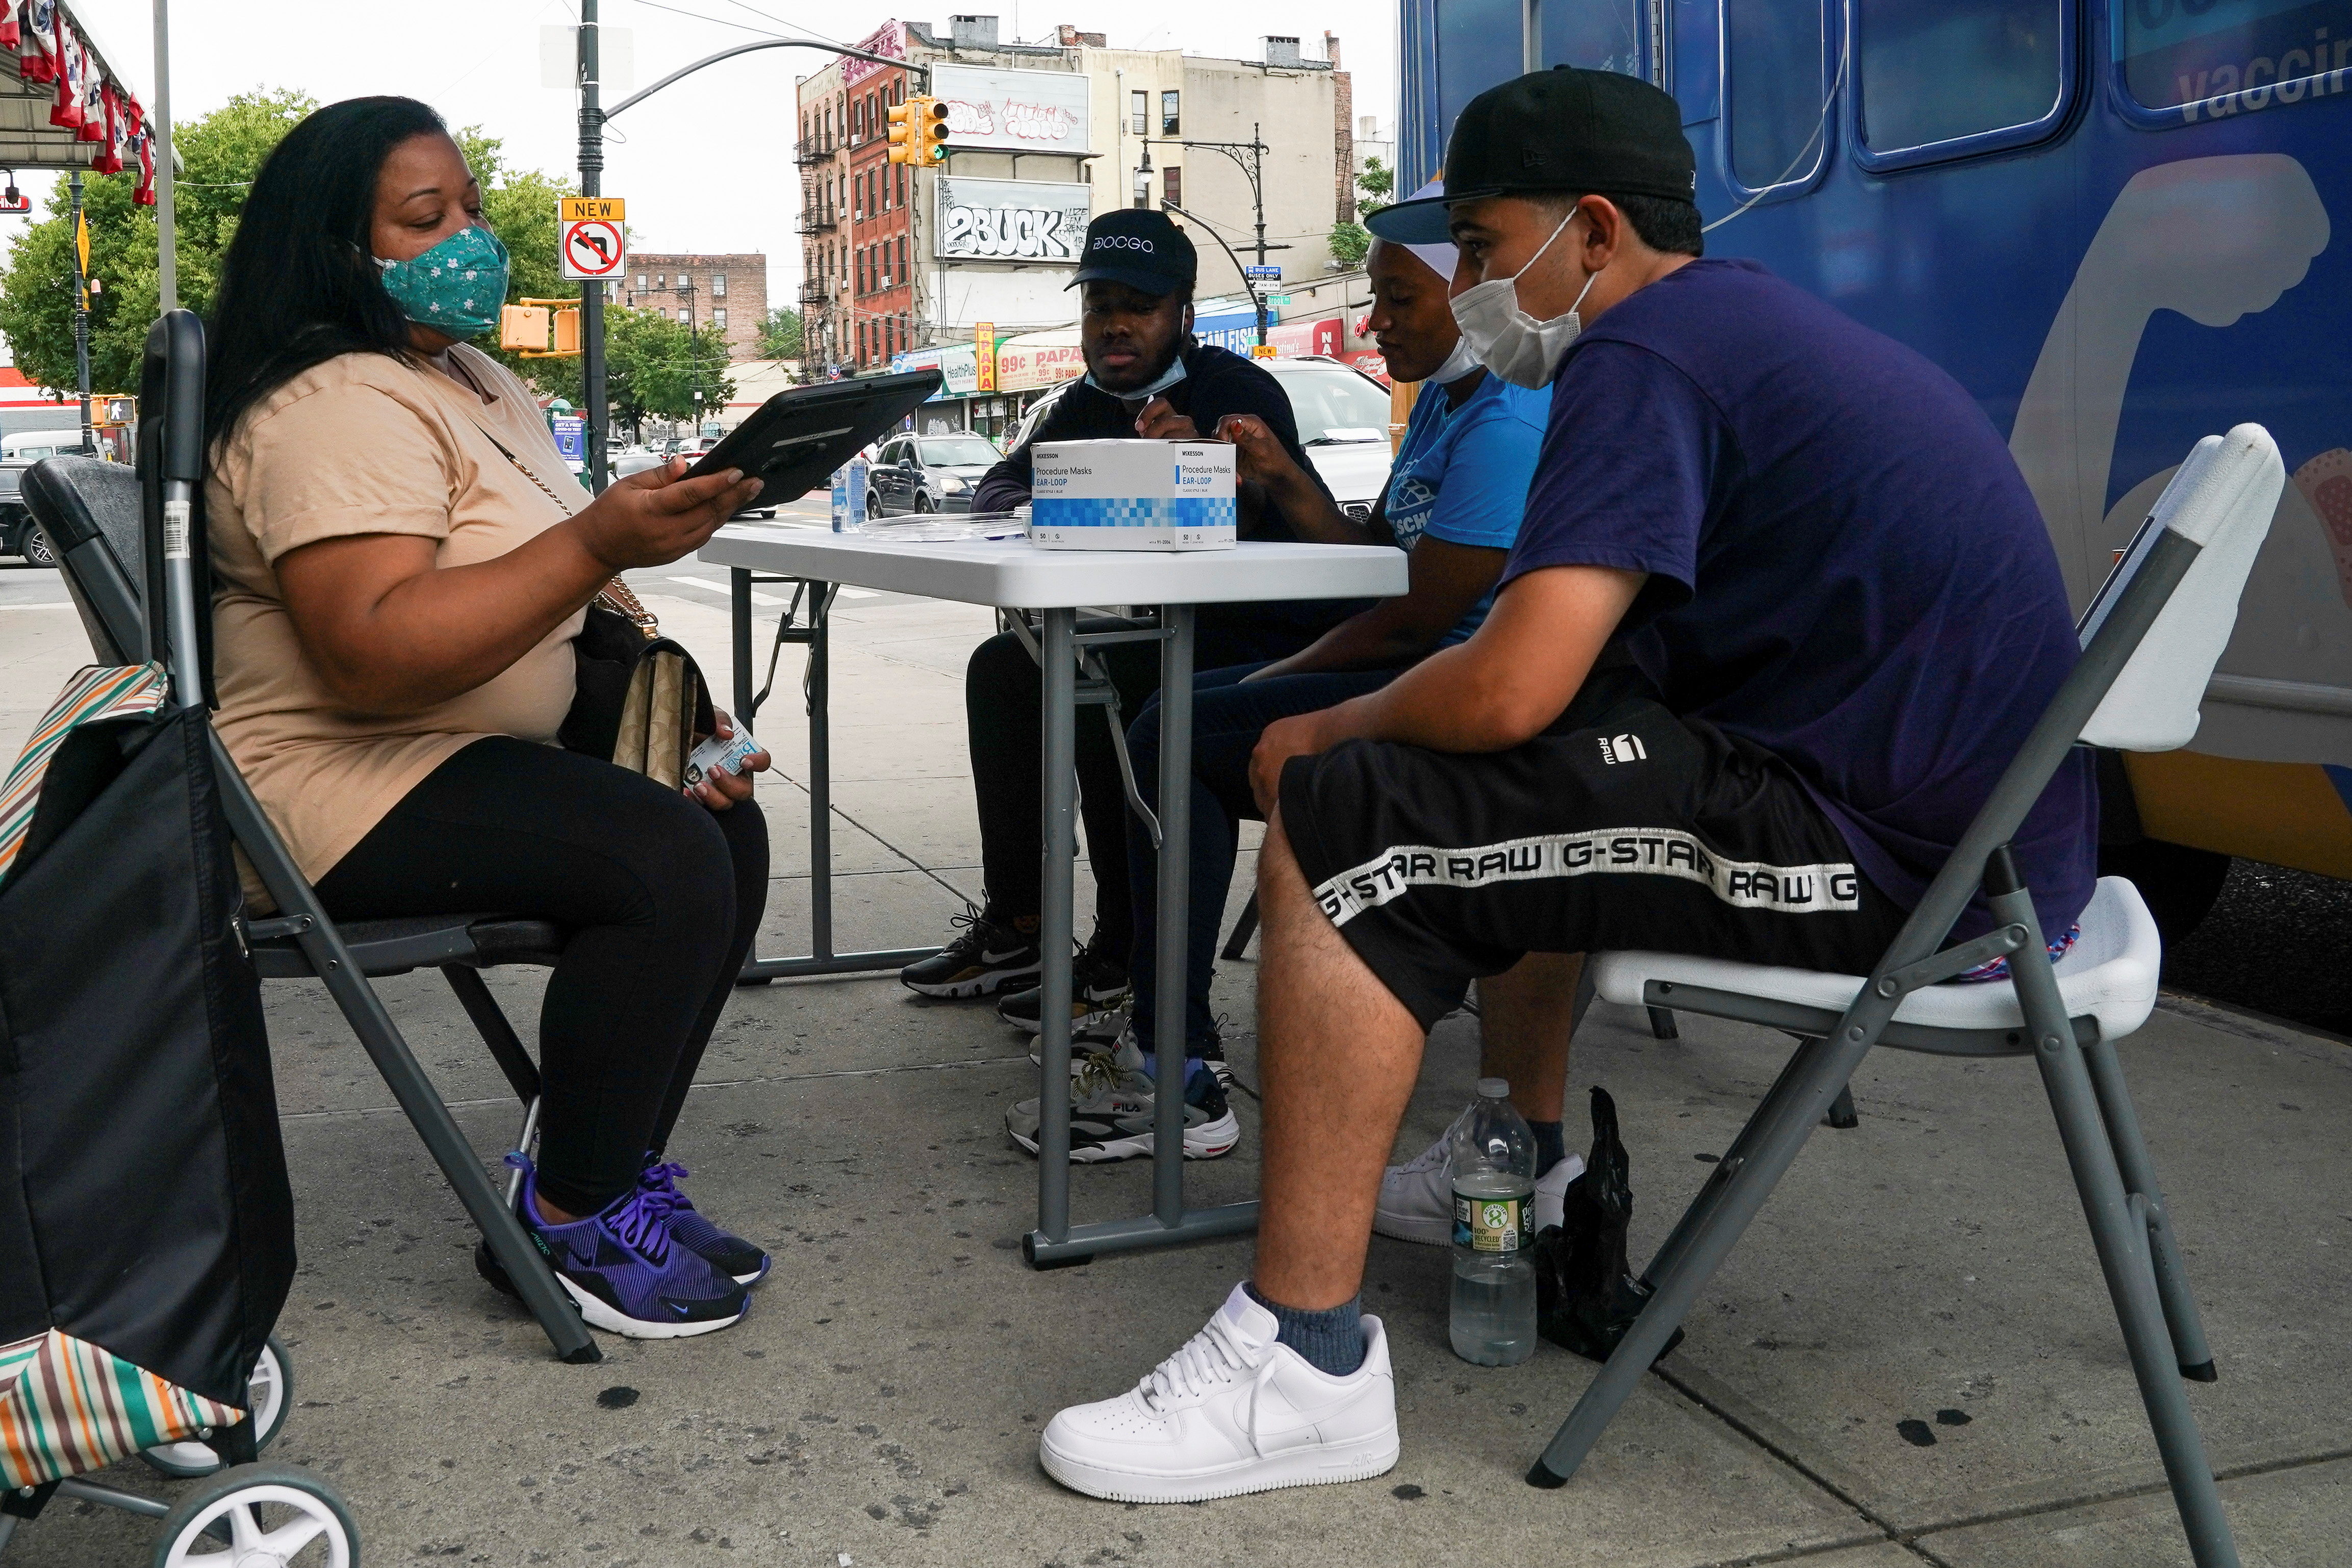 A person registers to receive a dose of the Pfizer-BioNTech vaccine for the coronavirus disease (COVID-19), at a mobile inoculation site in the Bronx borough of New York City, New York, U.S., August 18, 2021.  REUTERS/David 'Dee' Delgado